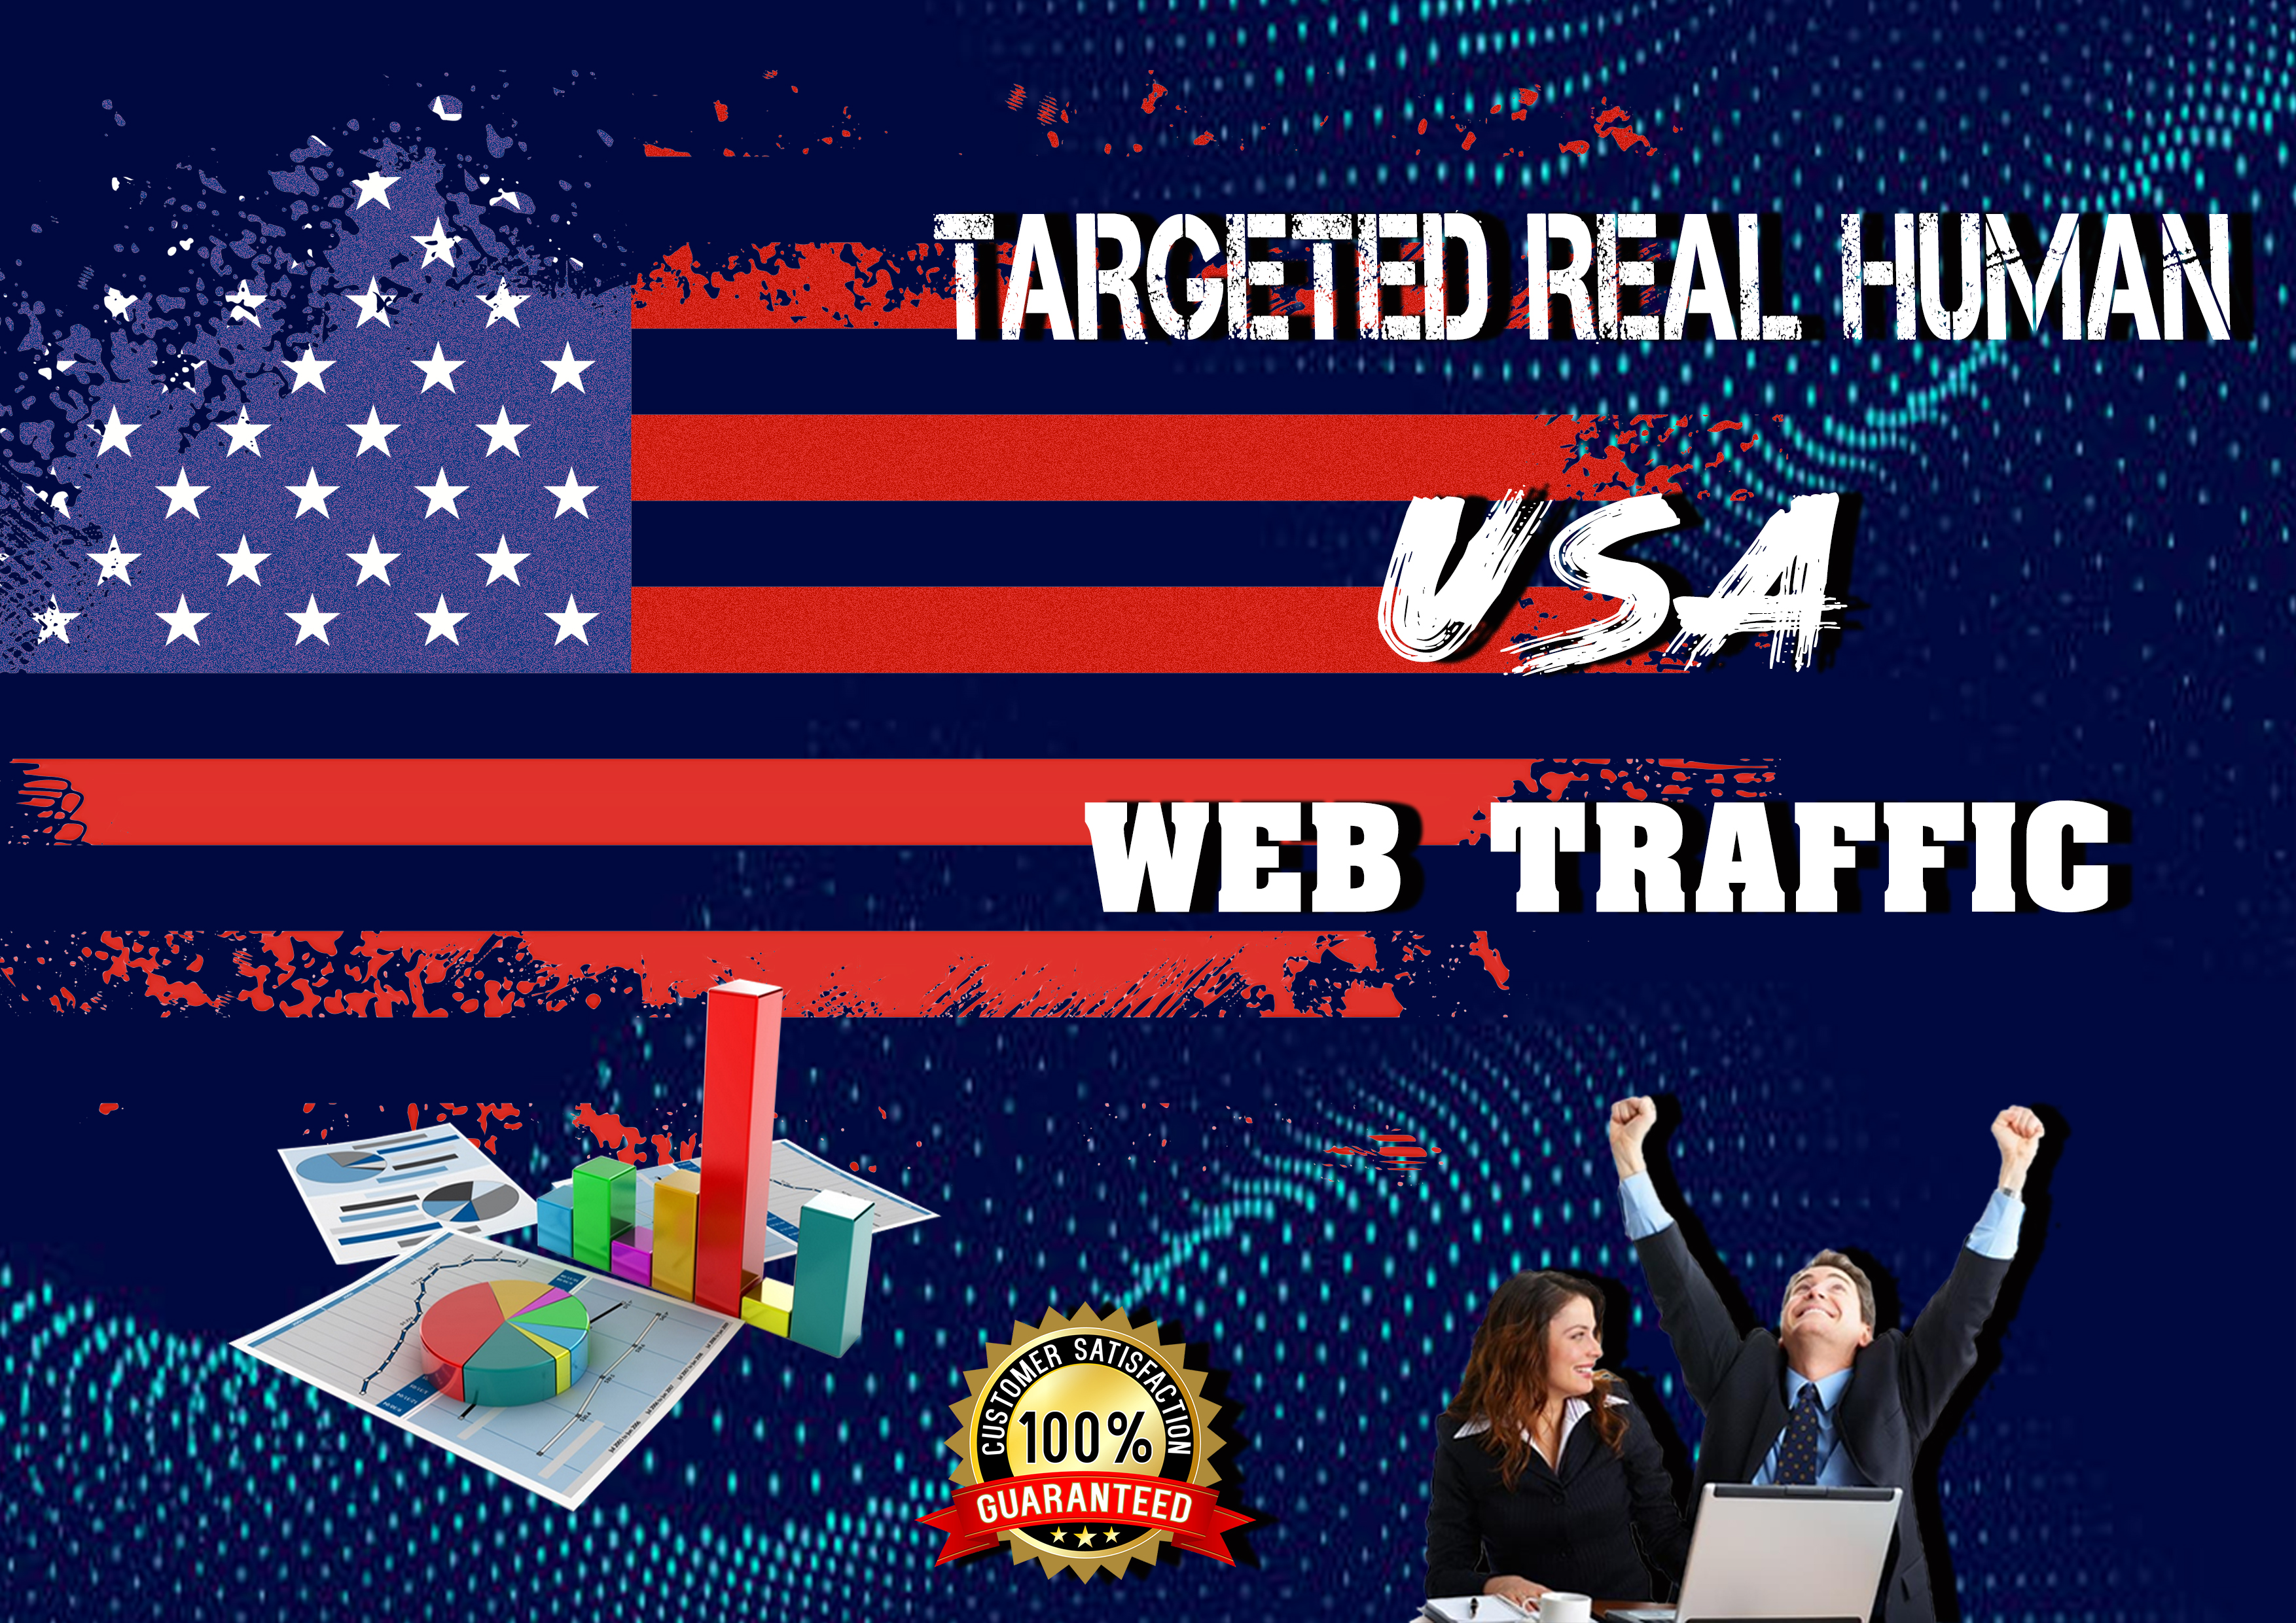 I will bring USA targeted daily 200 visitor real human 30days